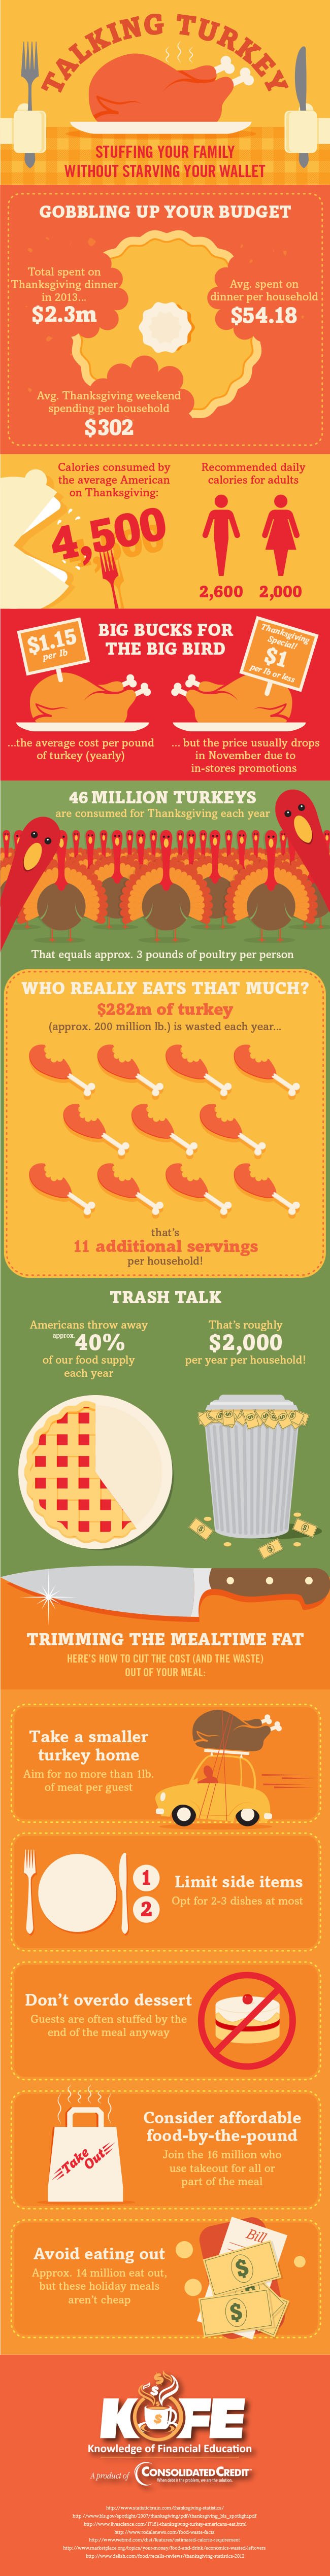 Talking Turkey infographic